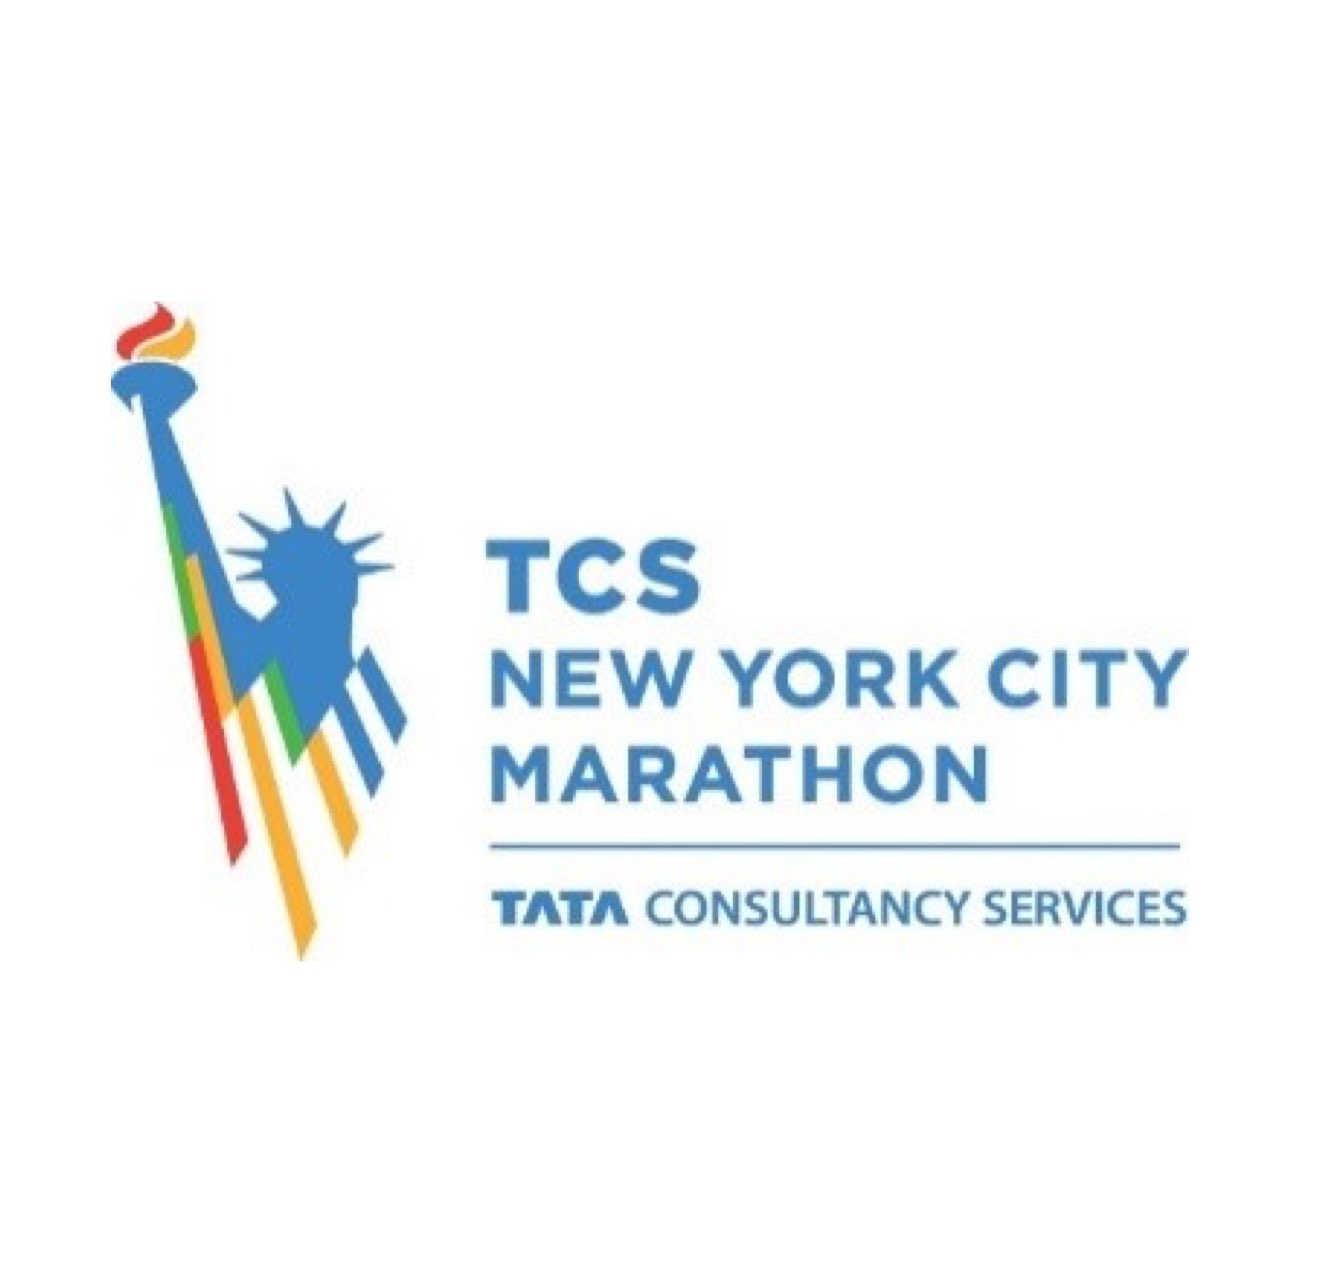 TCS New York City Marathon, 2016